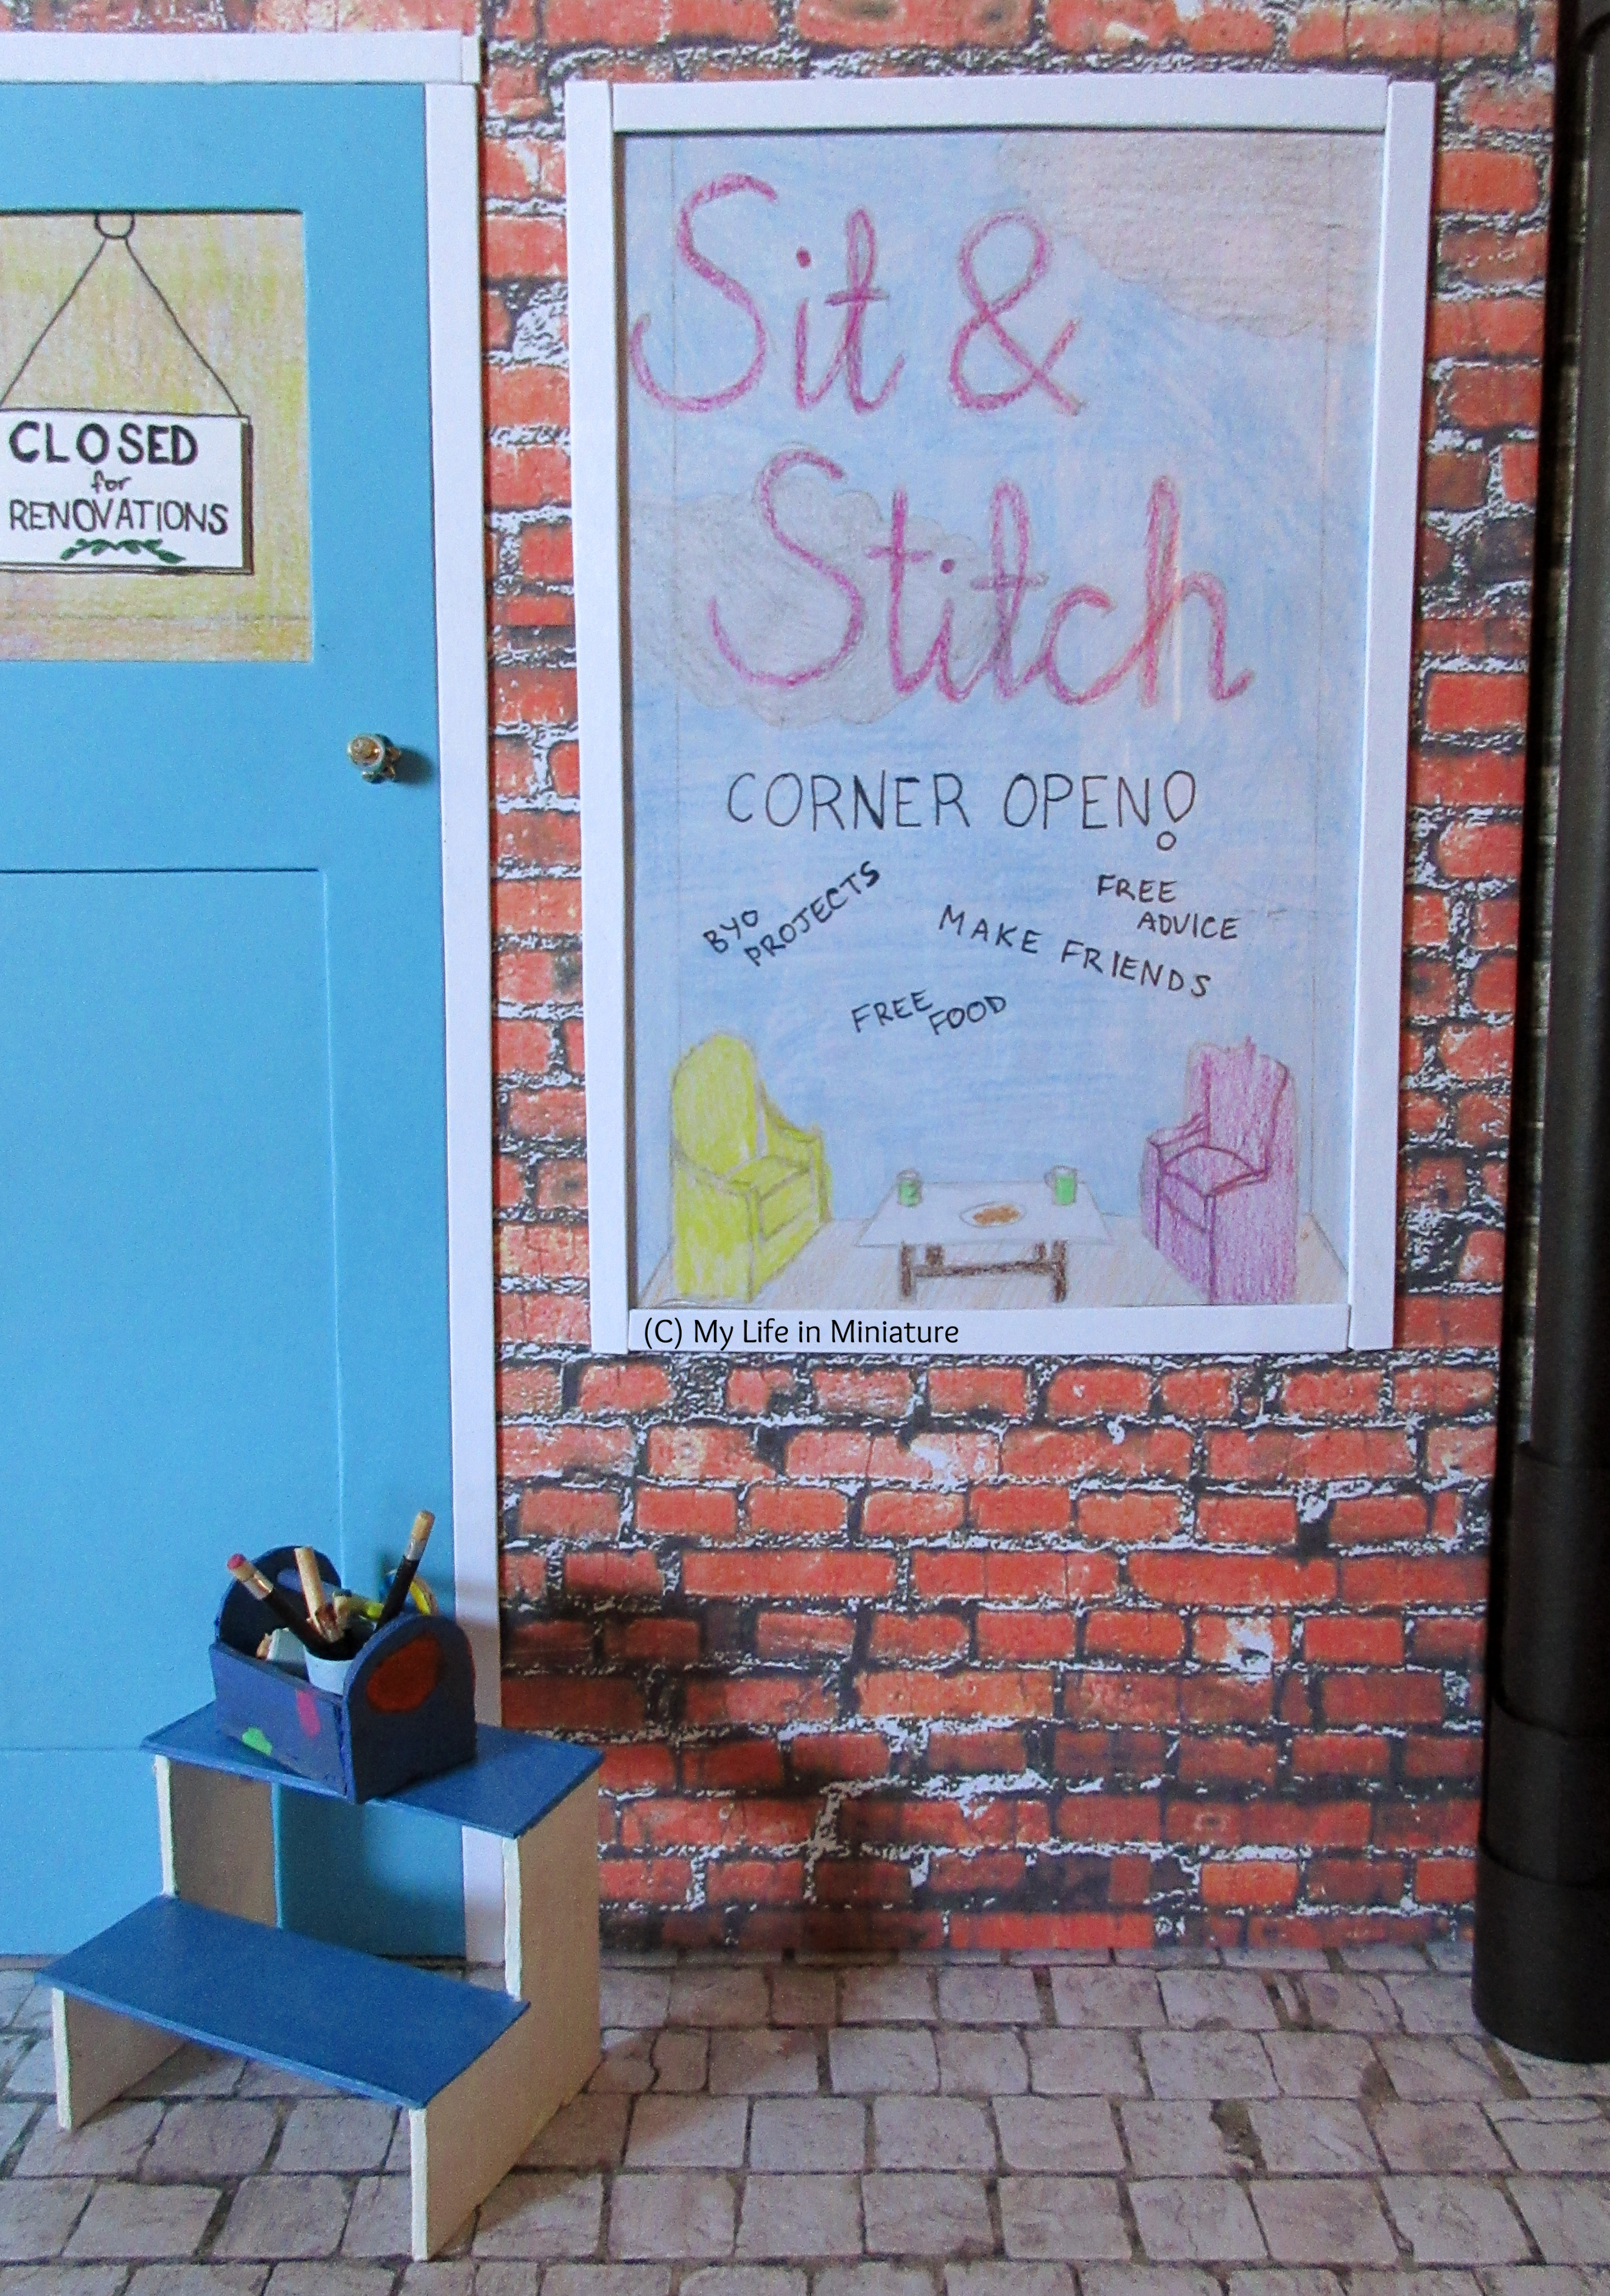 Clear shot of the 'Sit & Stitch' window display. The background to the display is blue sky with some silver clouds; the writing is purple and on the window. At the bottom is a miniature seating area, along with text that says 'Corner Open!' and some of the things offered.